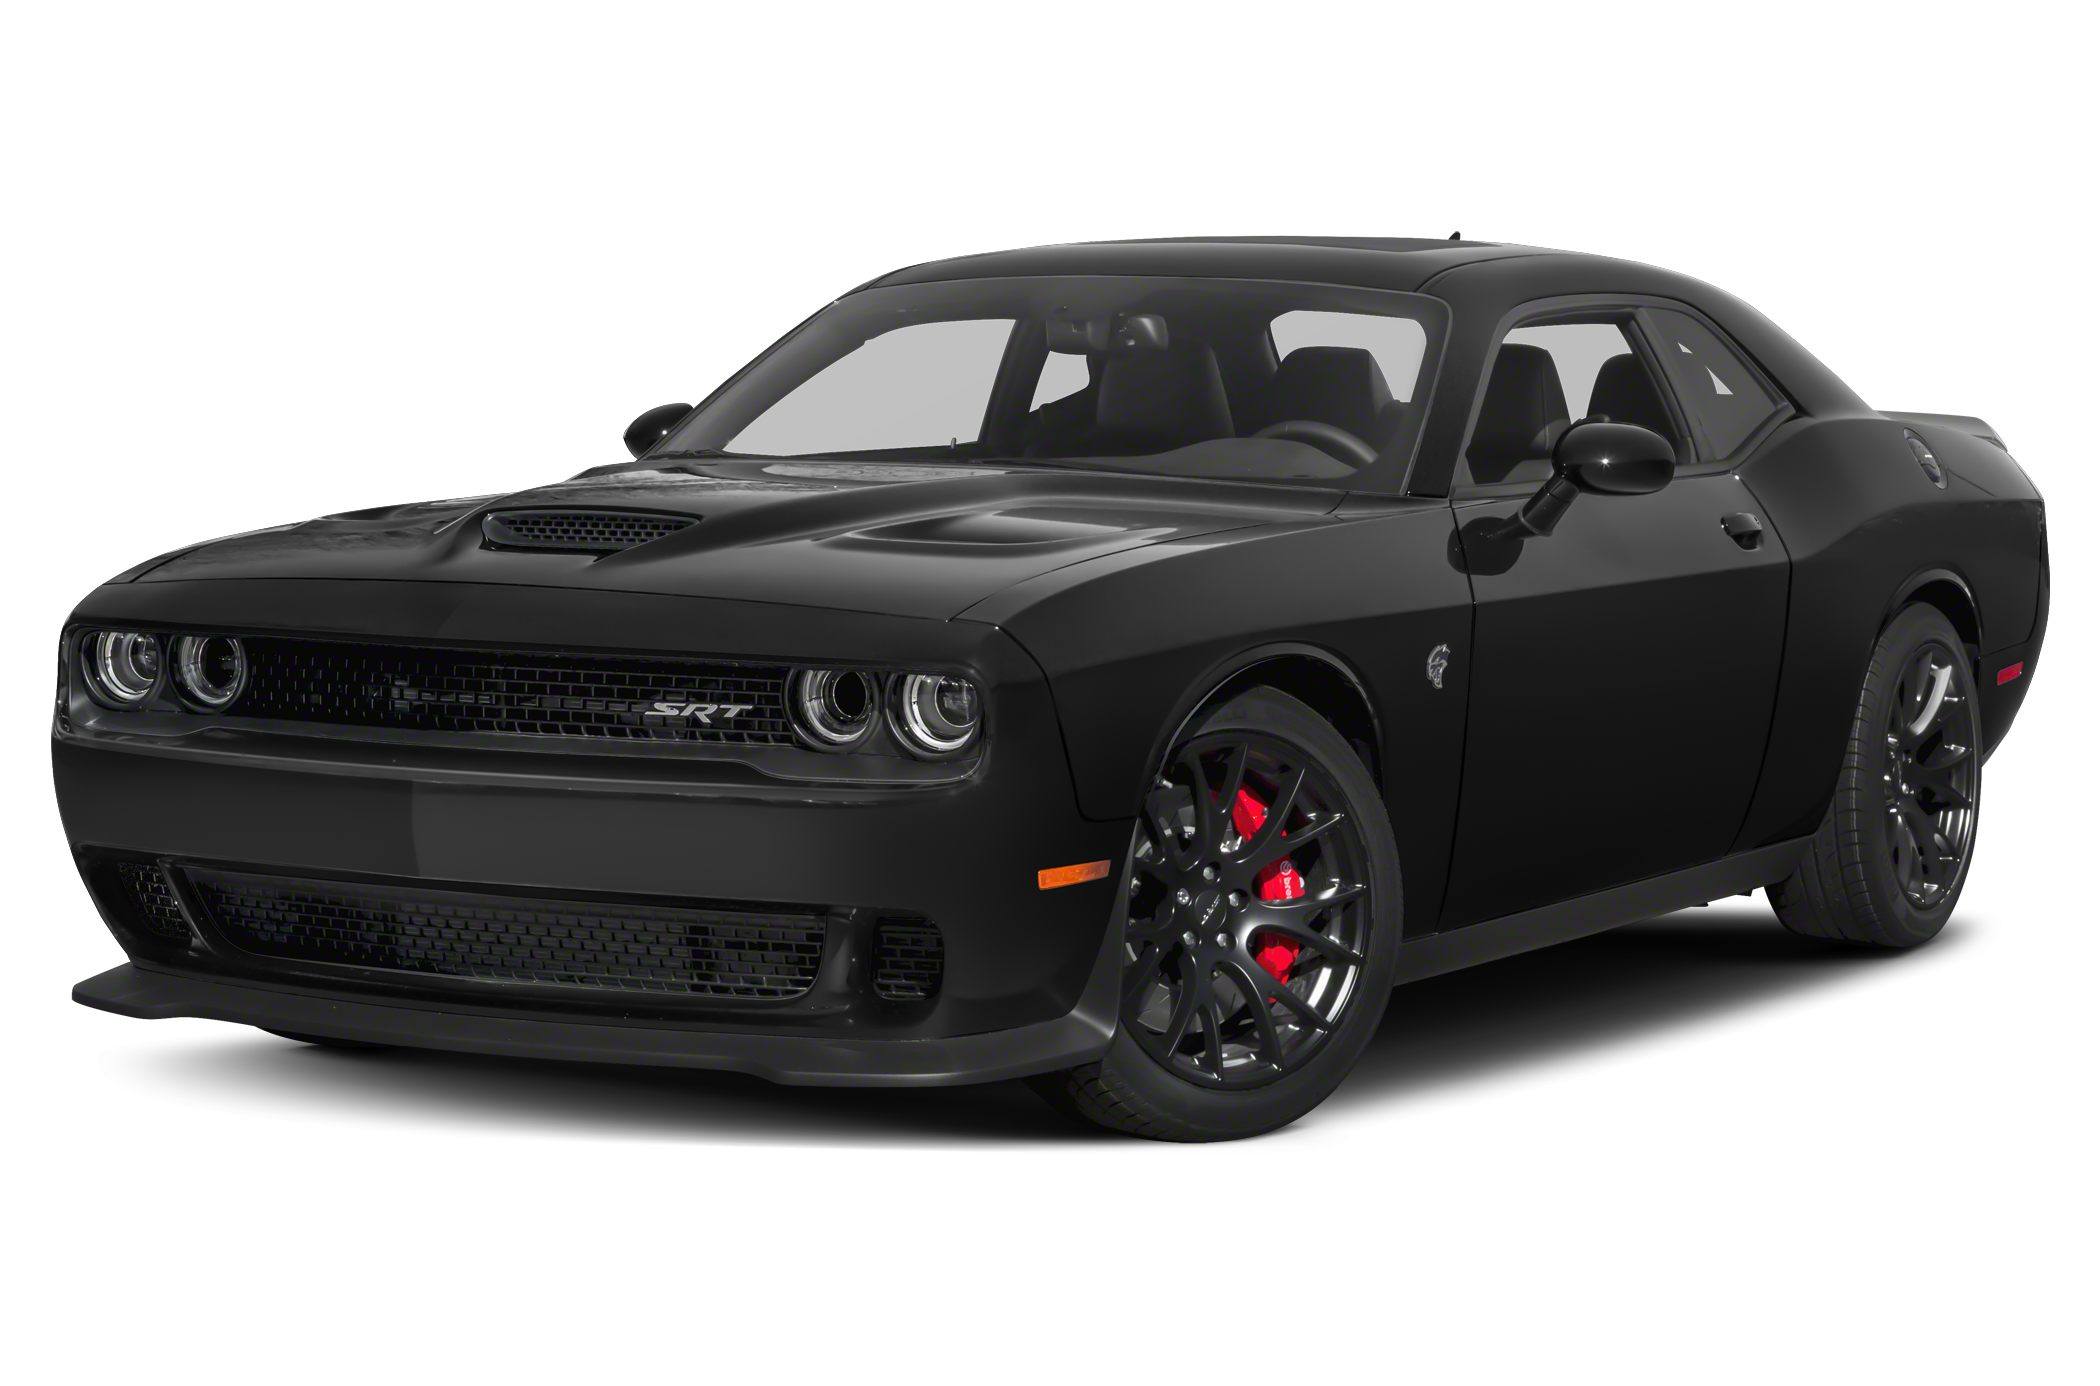 2016 Dodge Challenger SRT Hellcat 2dr Coupe Pricing and Options